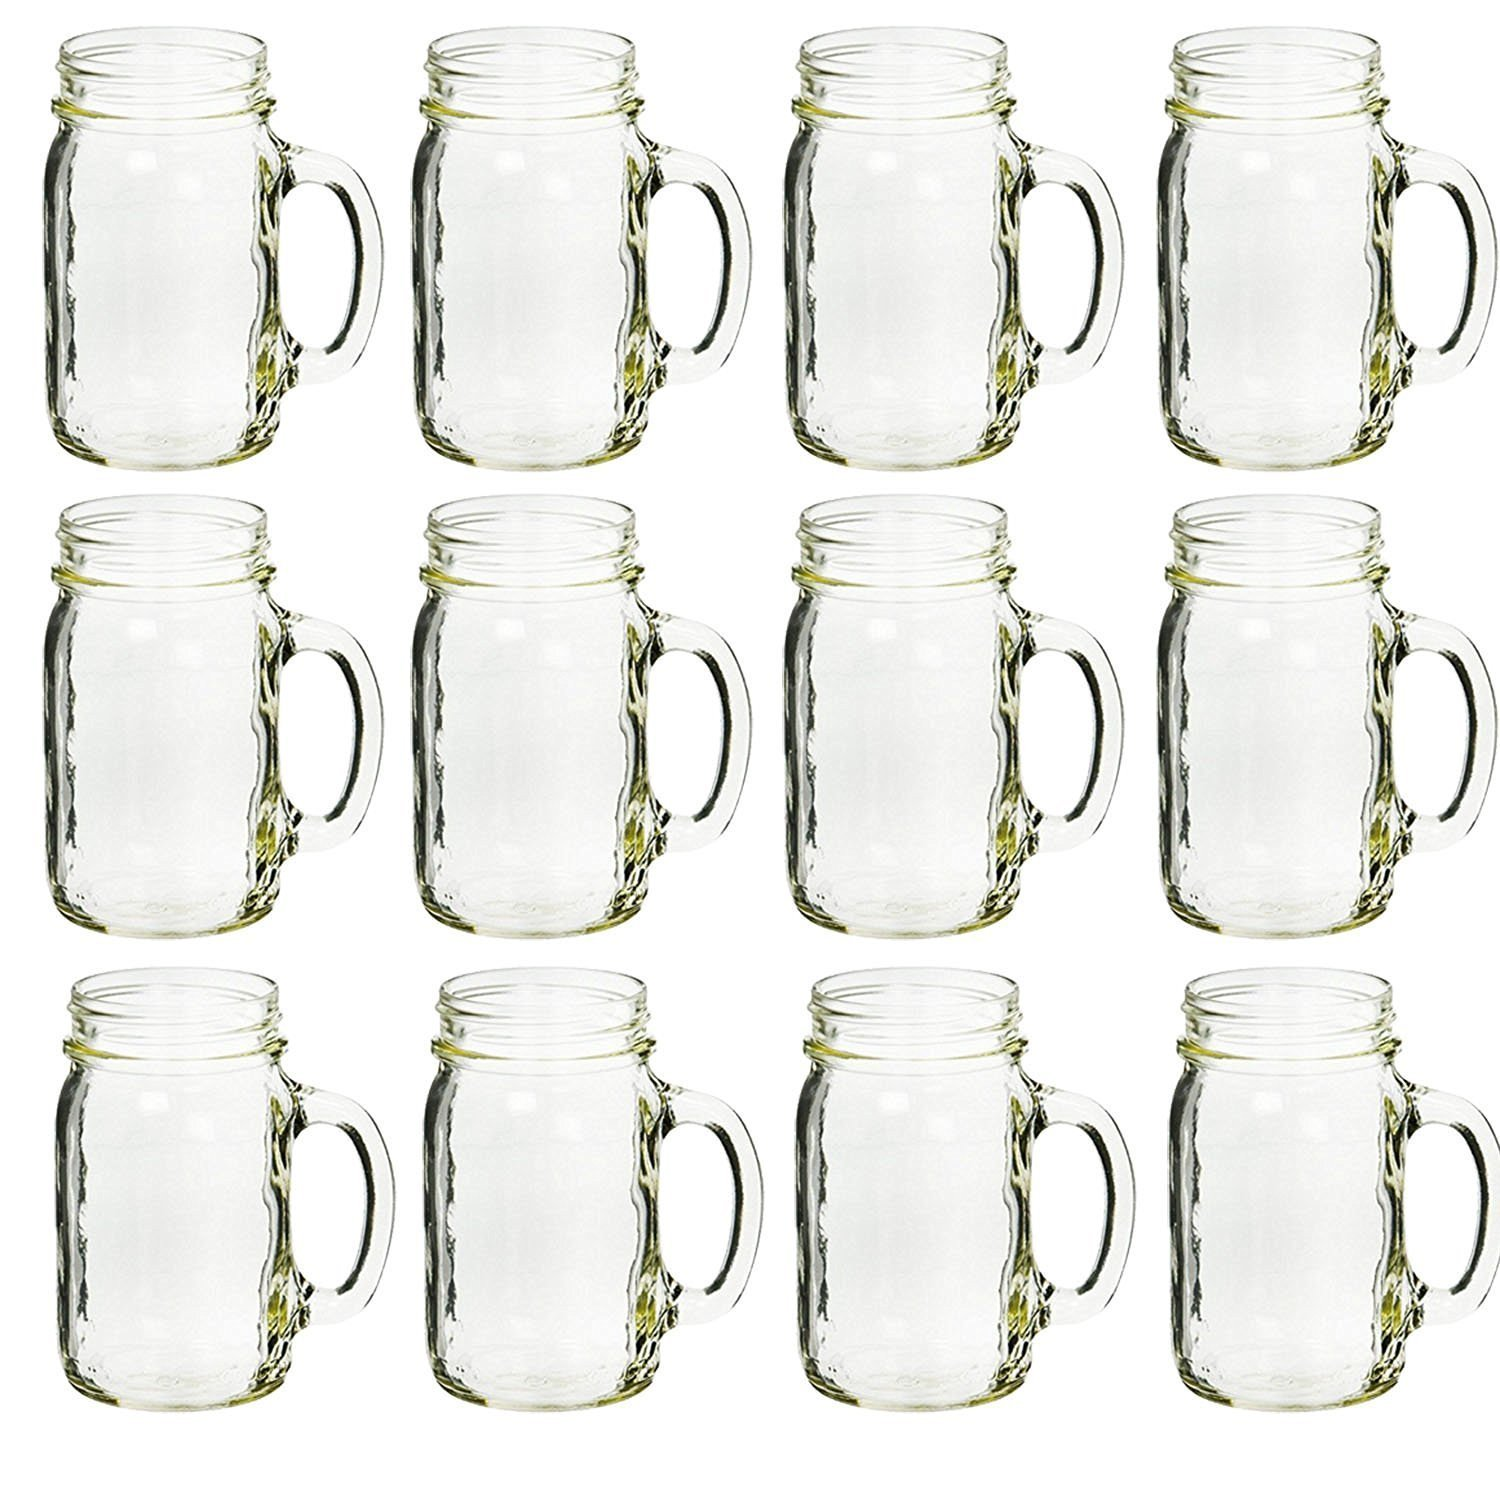 mason jar drinking glasses with handles by ball buy them here in bulk - Mason Jar Drinking Glasses